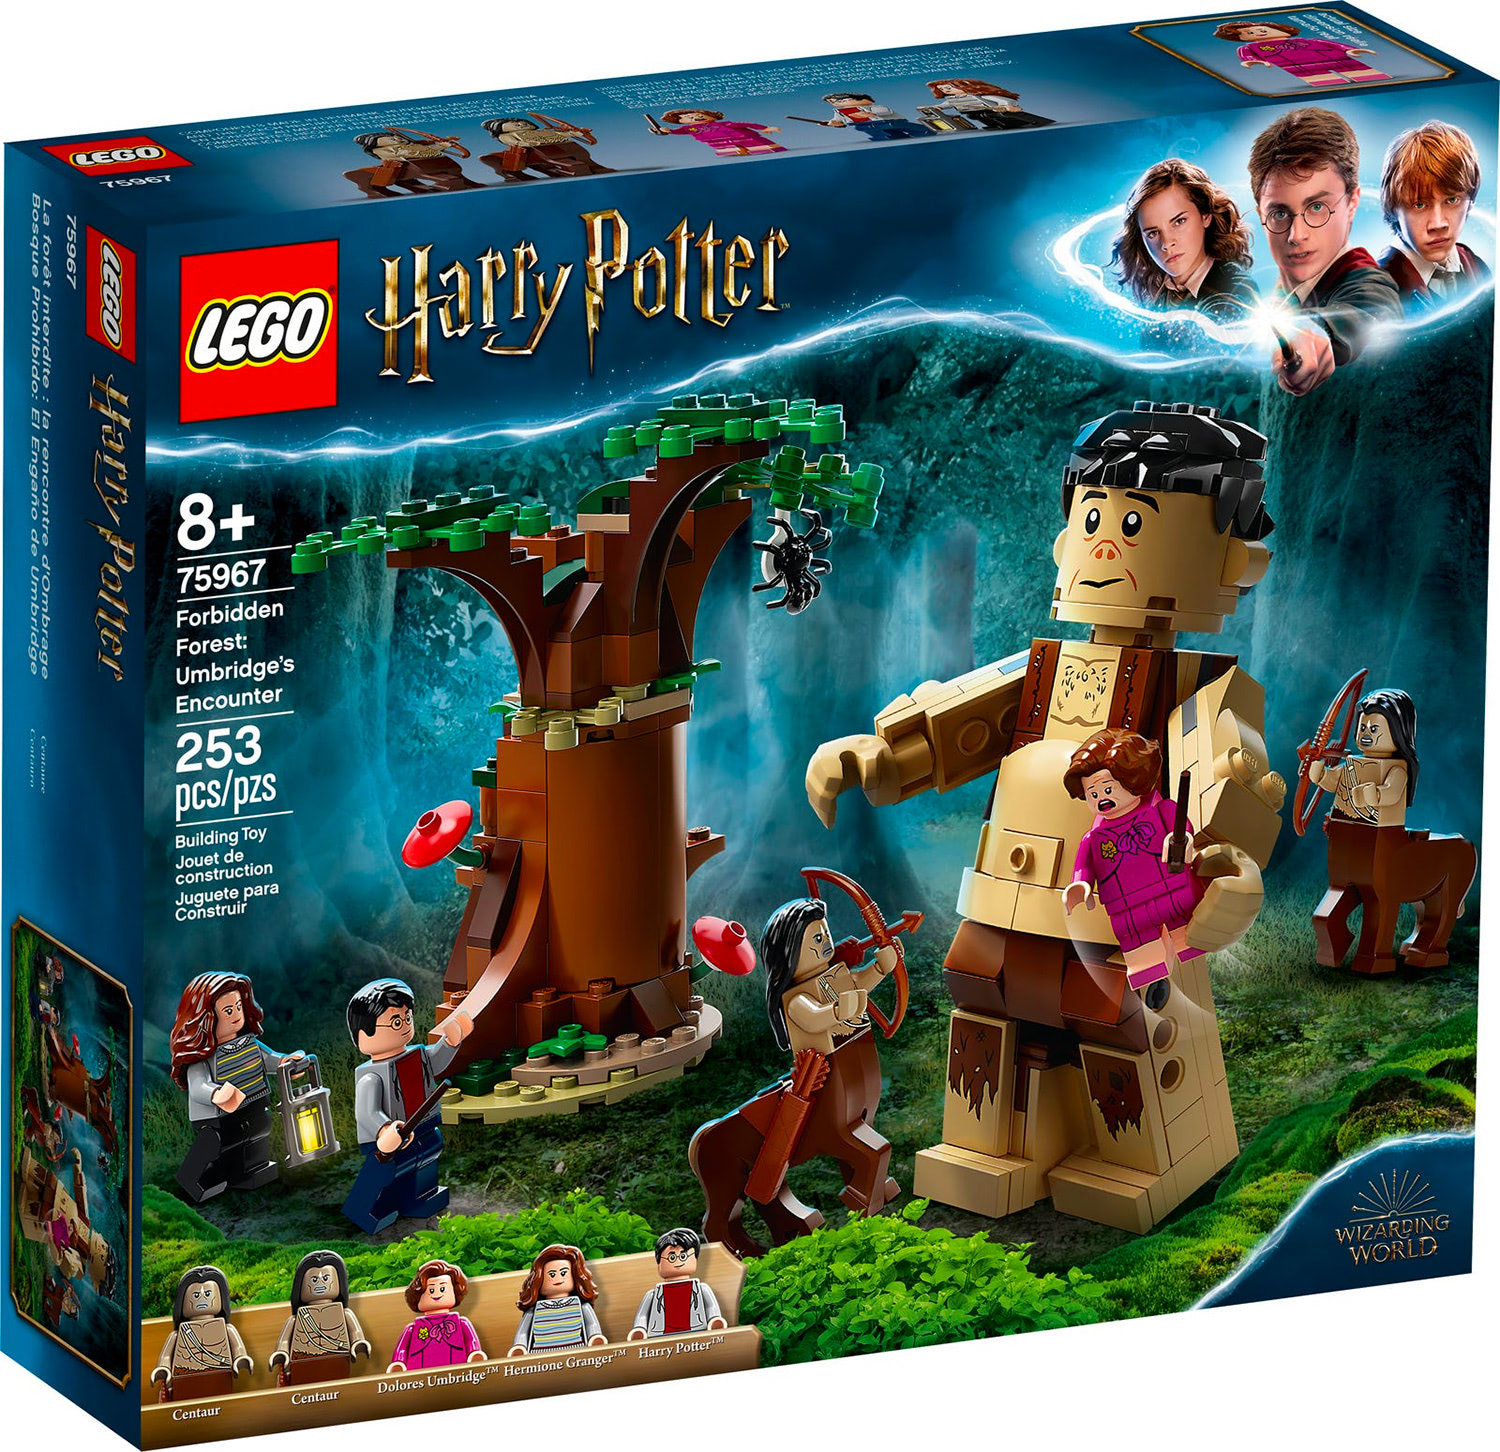 Forbidden Forest: Umbridge's Encounter (75967)